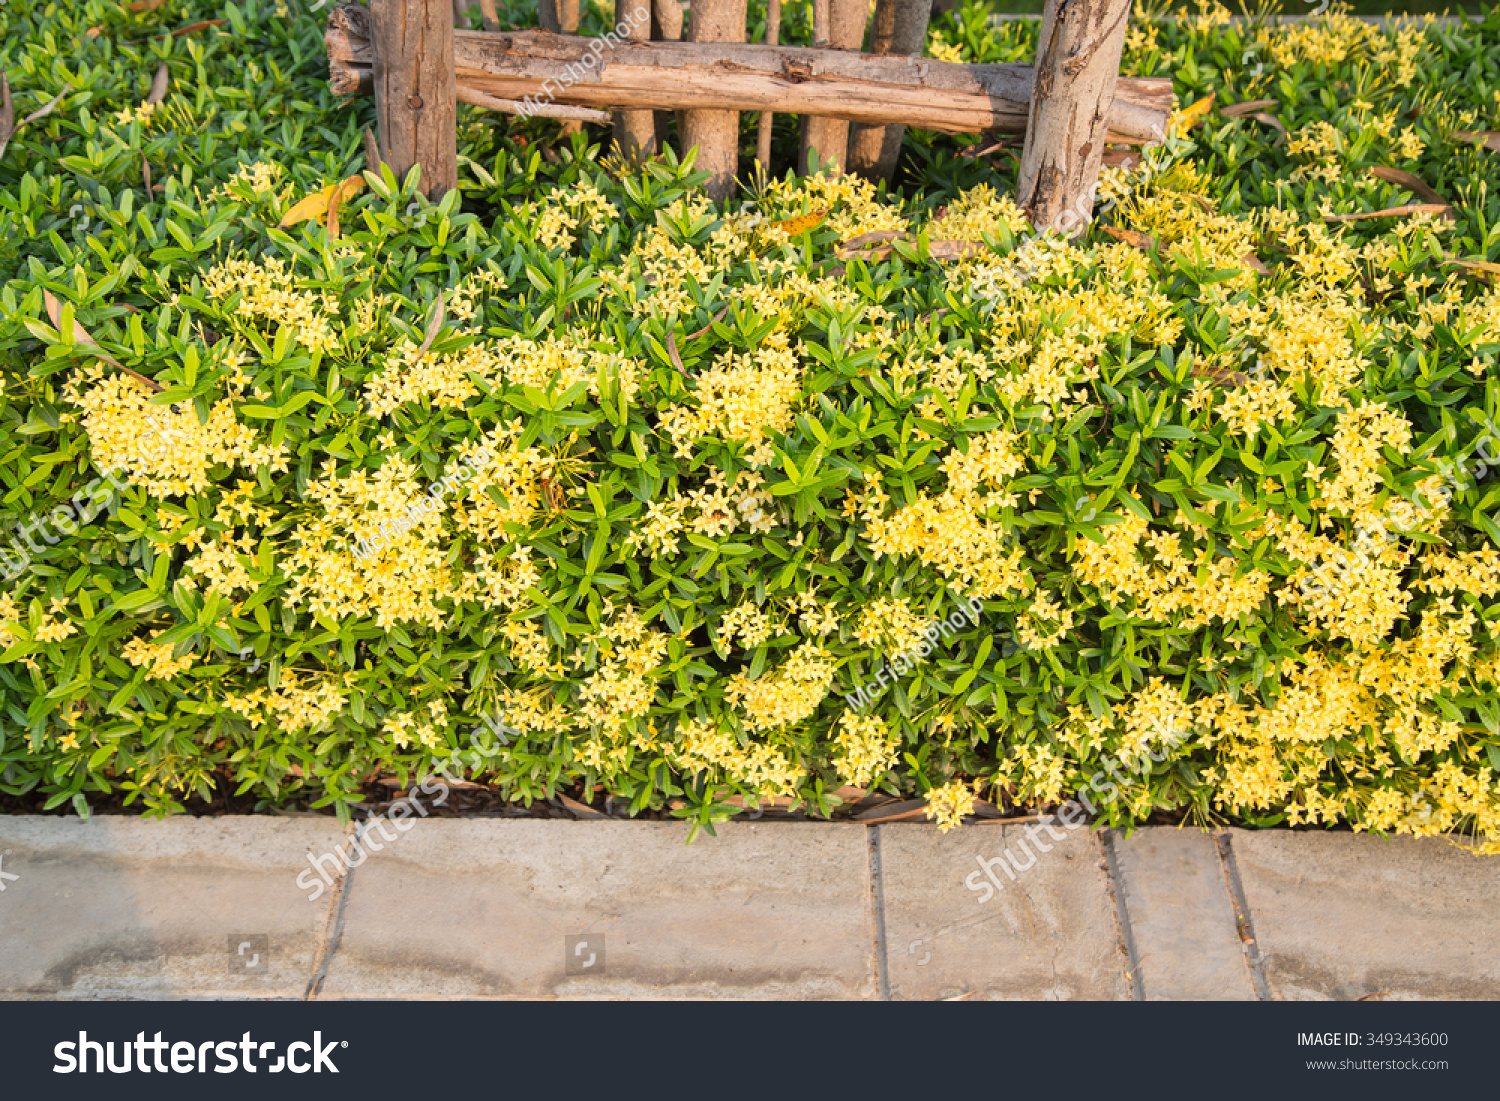 Decoration yellow flowers west indian jasmine stock photo edit now decoration with yellow flowers west indian jasmine scientific name ixora izmirmasajfo